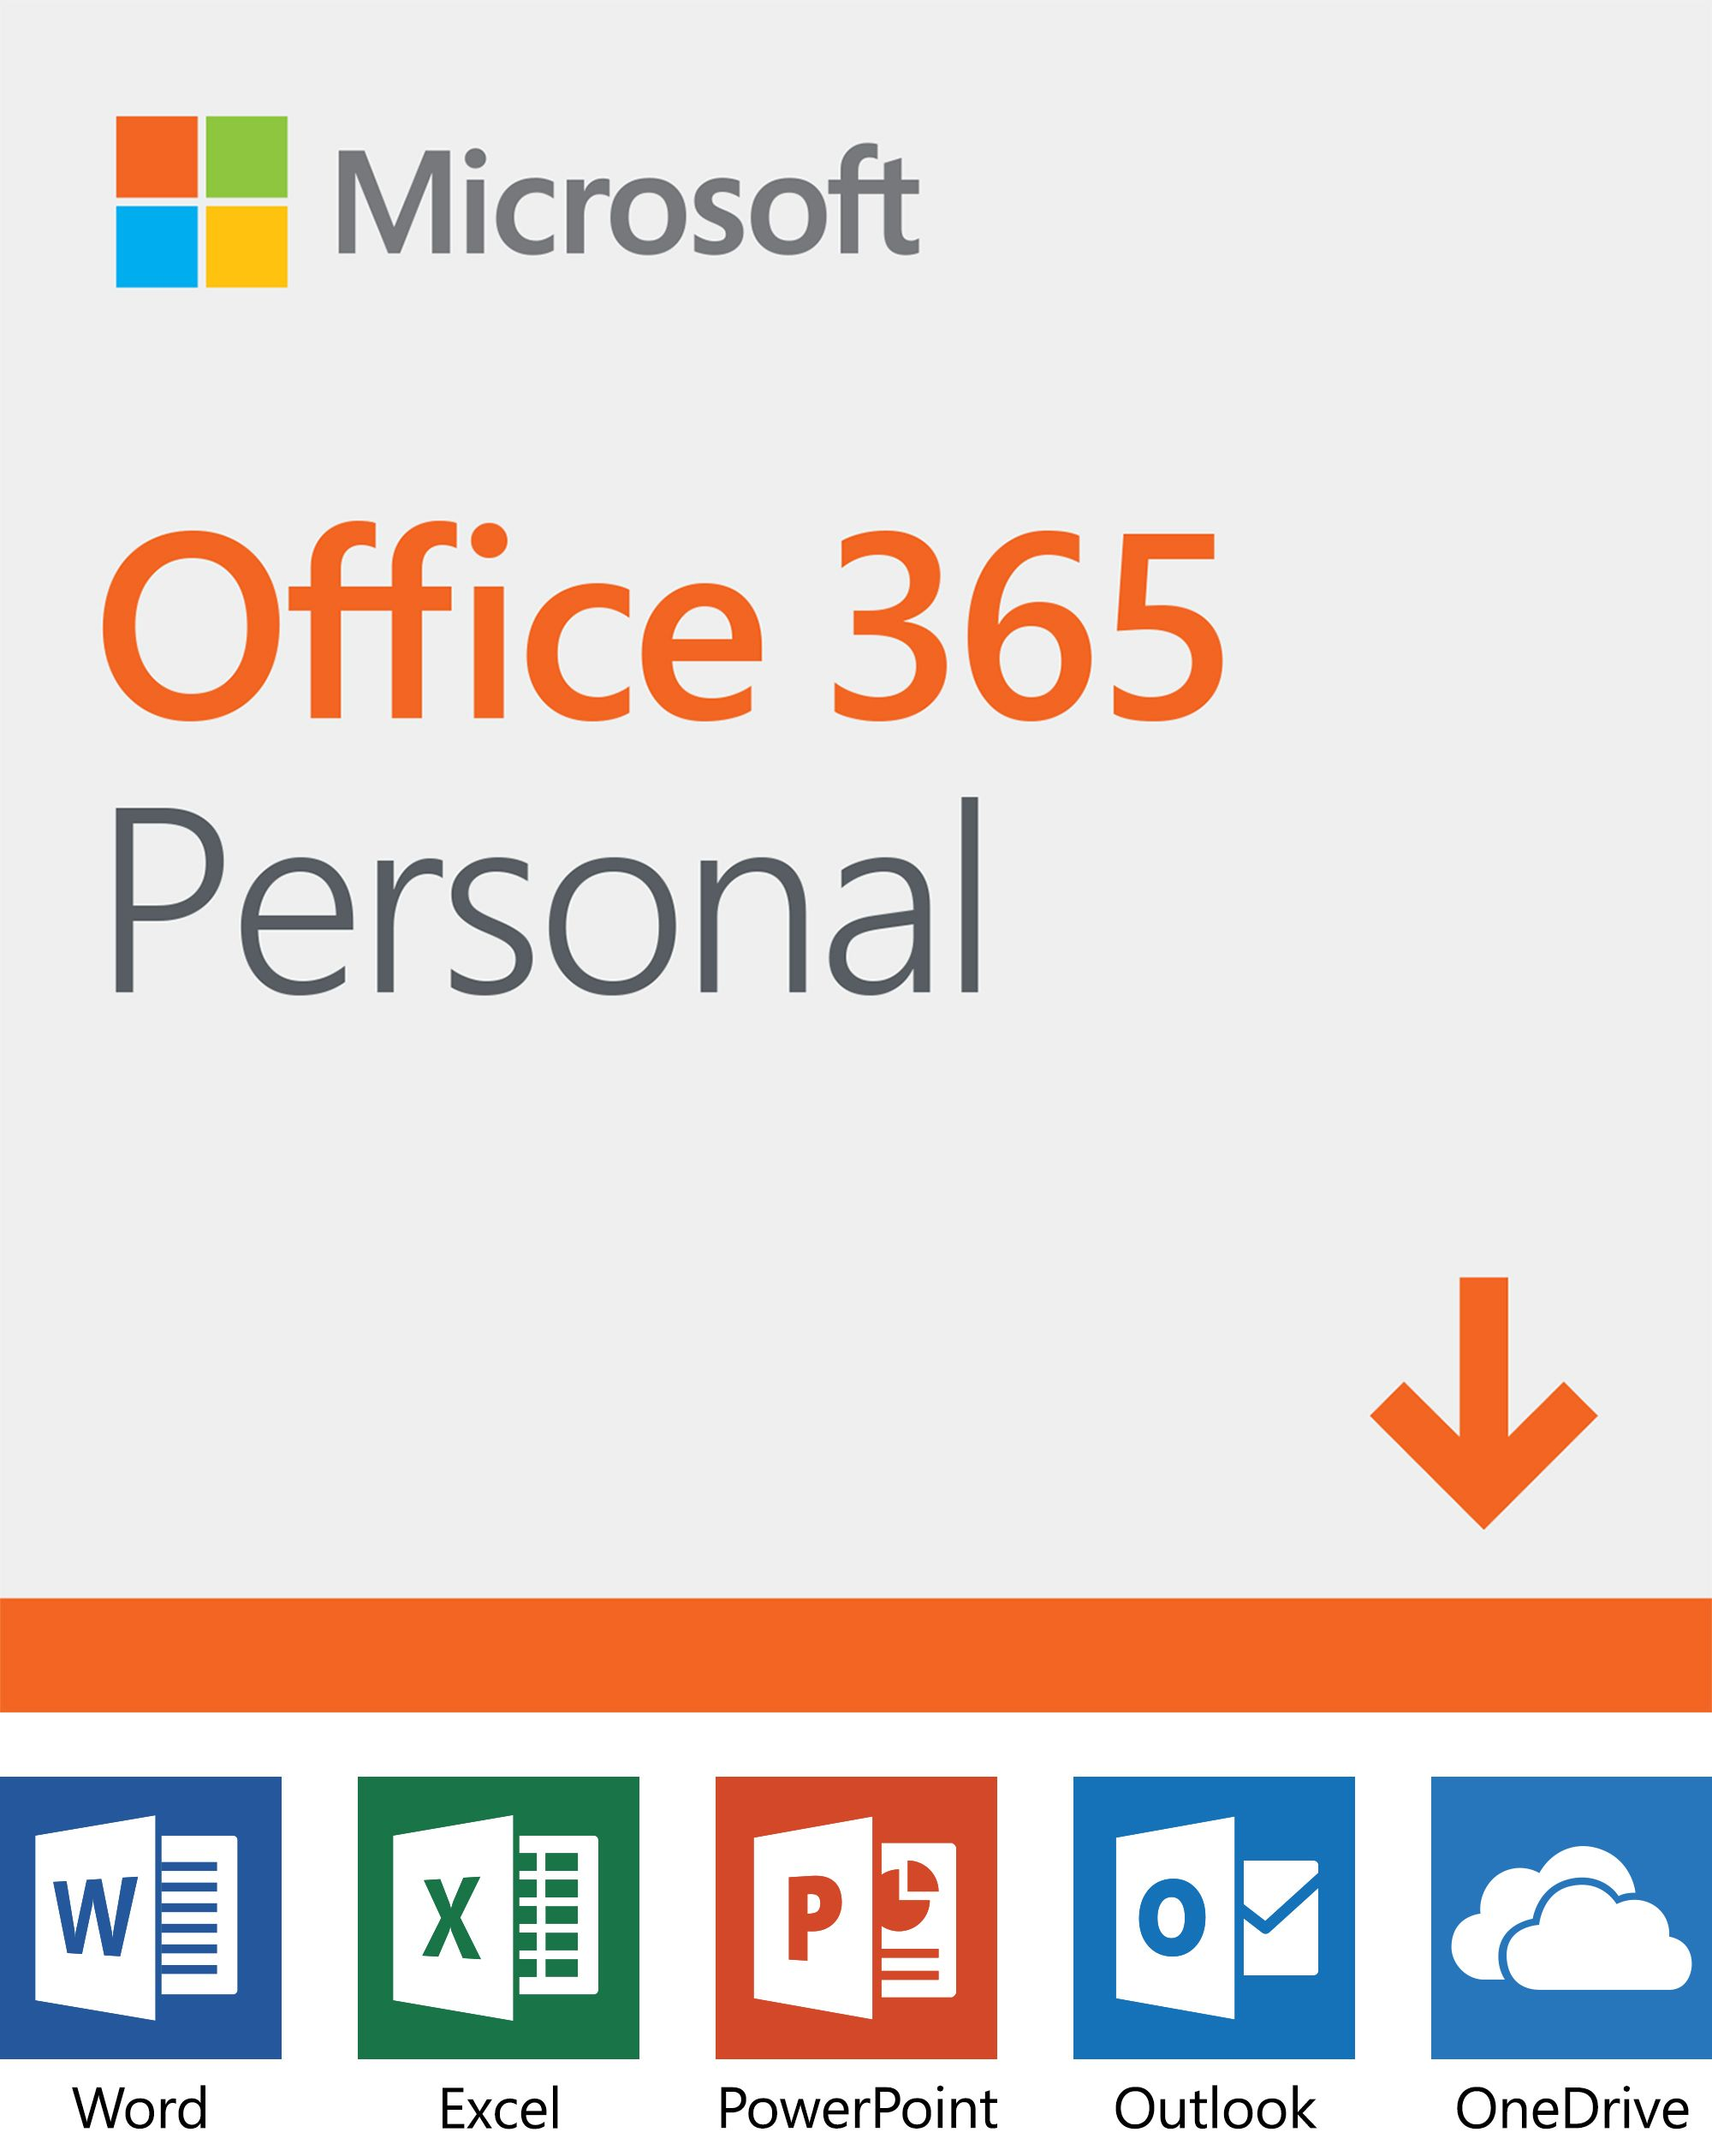 Microsoft 365 Personal 12 Month Subscription 1 Person Premium Office Apps 1tb Onedrive Cloud Storage Pc Mac Download Walmart Com Office 365 Personal Office 365 Microsoft Office